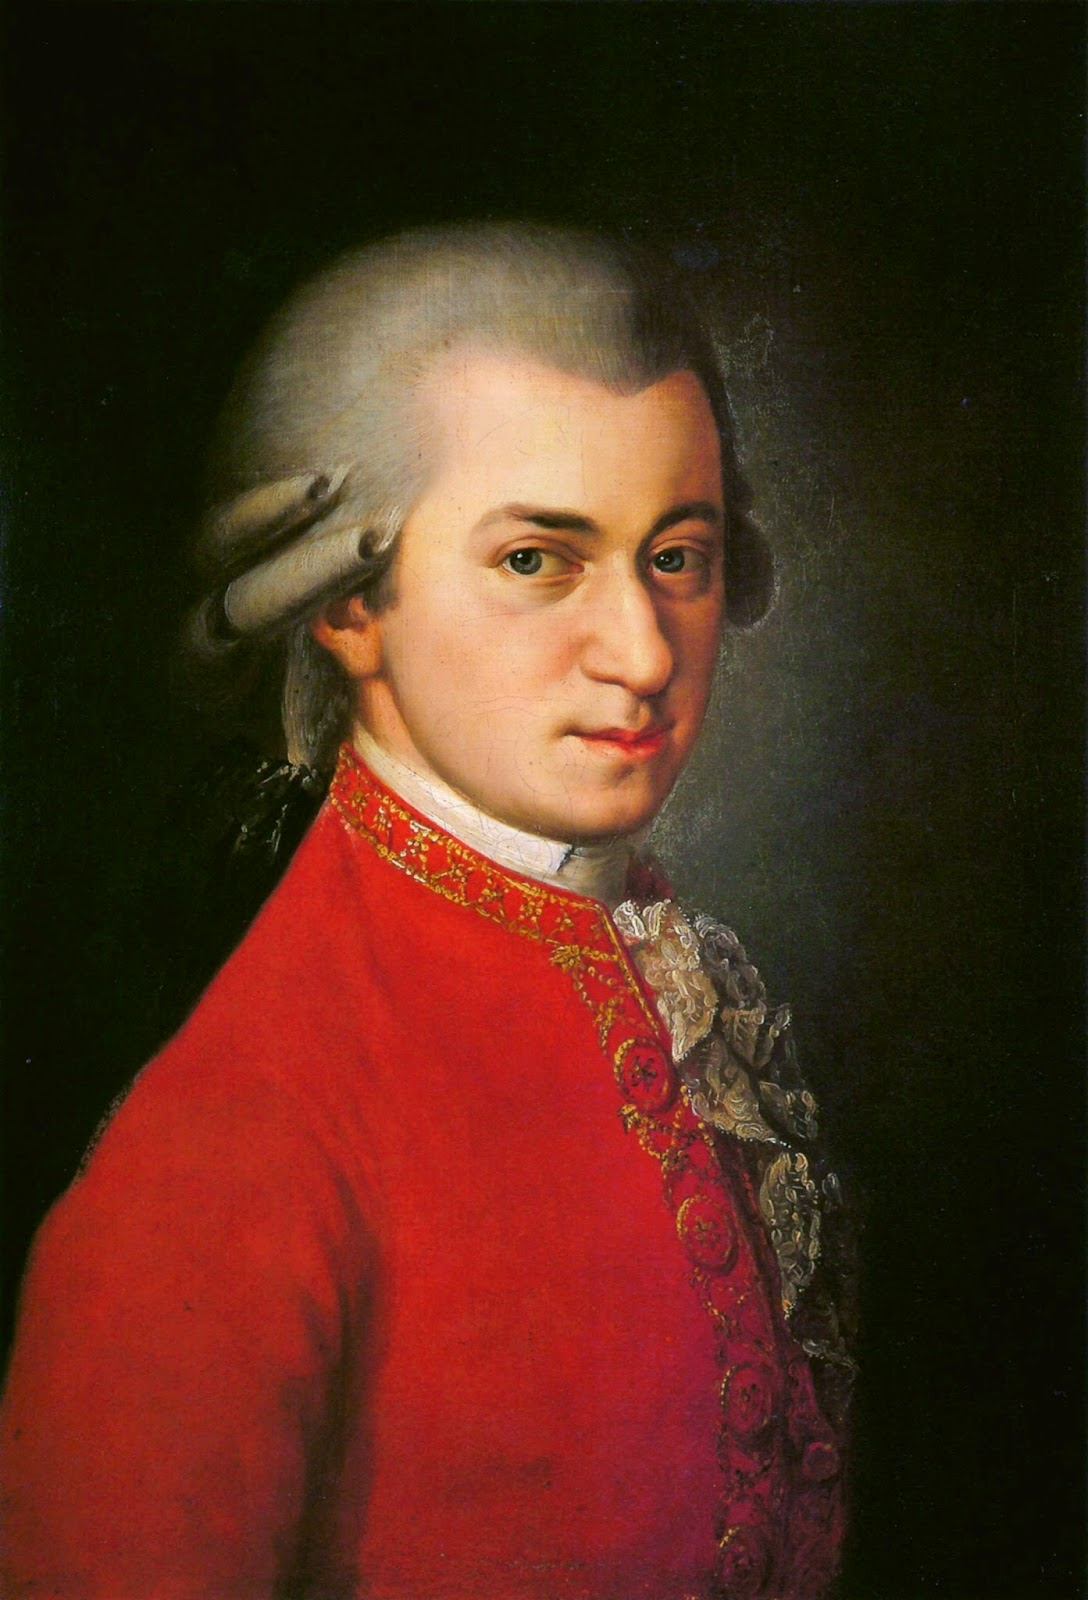 The 15 Greatest Classical Composers Of All Time - Wolfgang Amadeus Mozart (1756-1791)